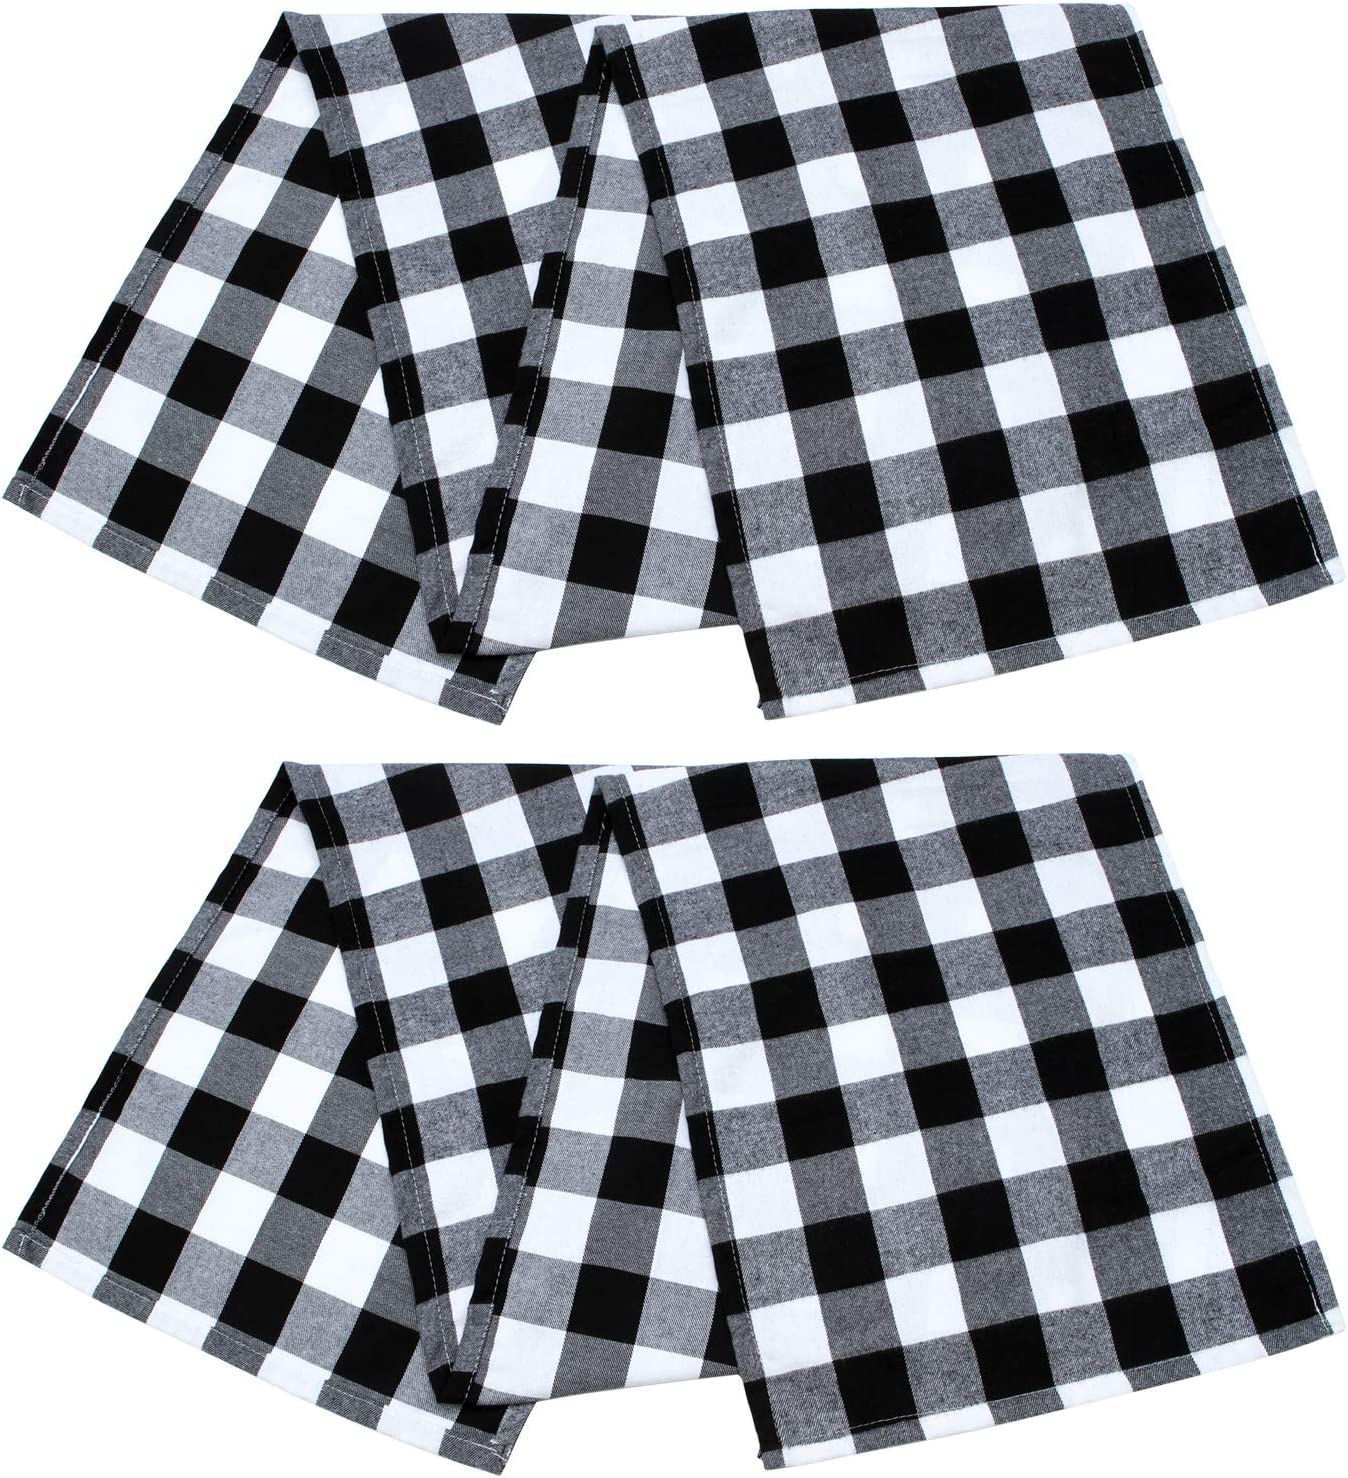 ANECO 2 Pack Sales Table Runner Cotton shop Checkered M Trendy